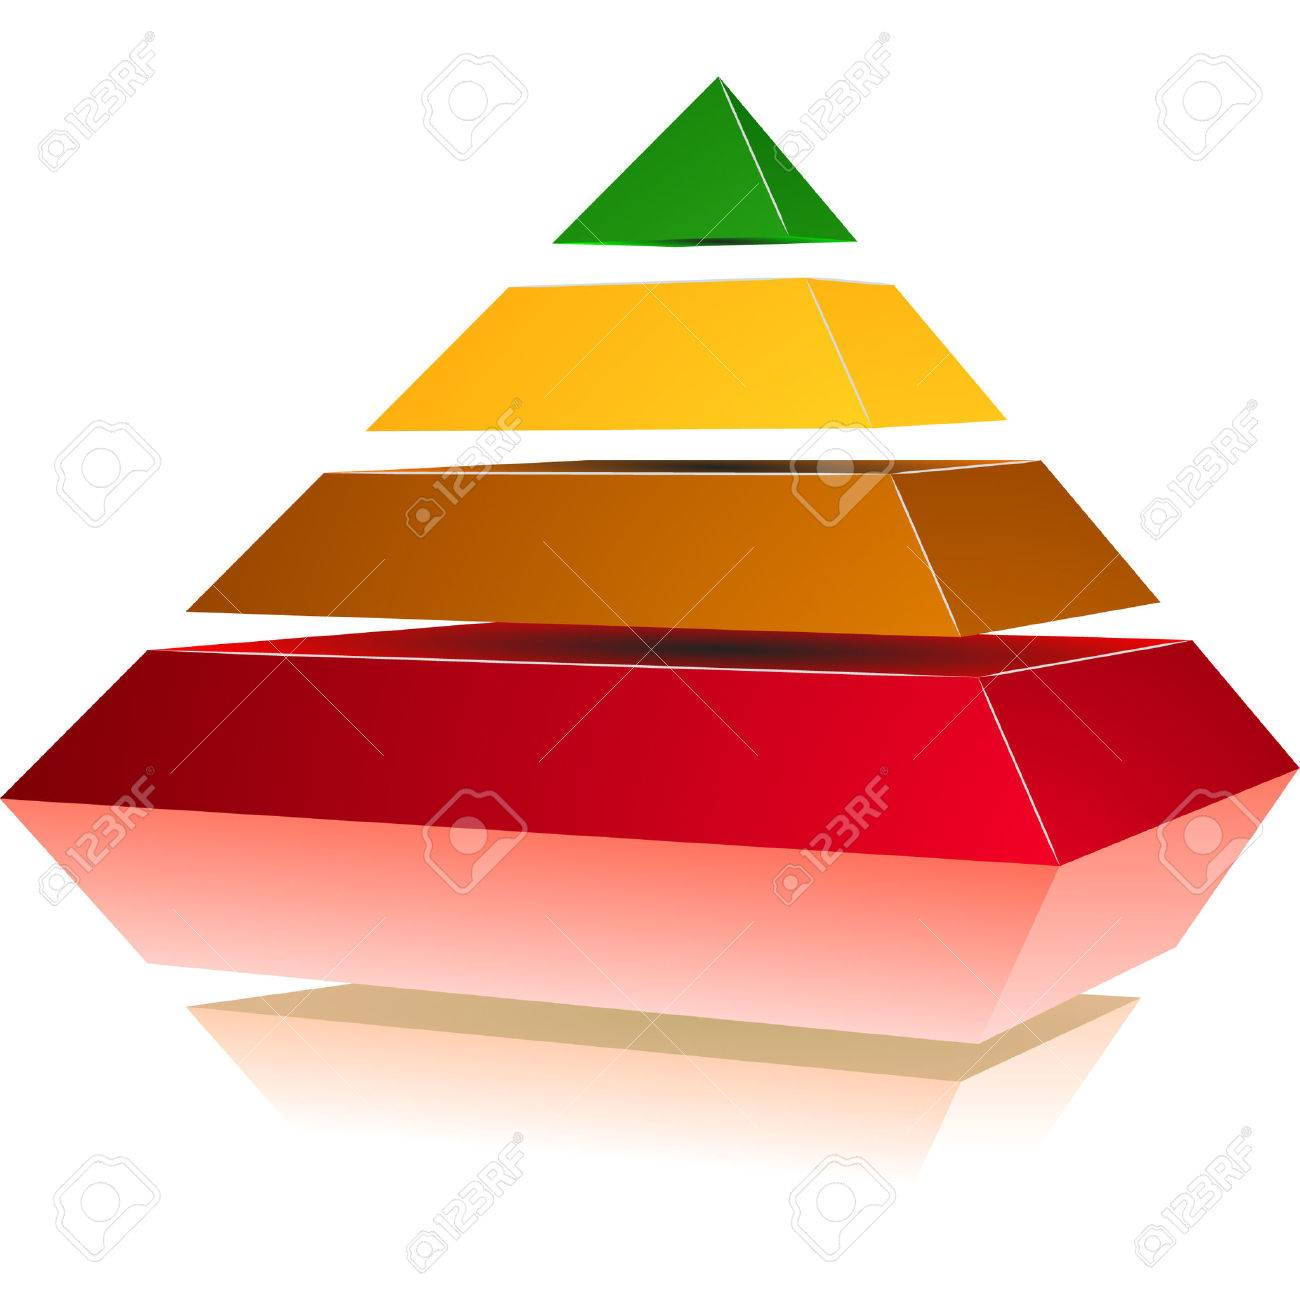 illustration of a pyramid with four colored levels Stock Vector - 8986623